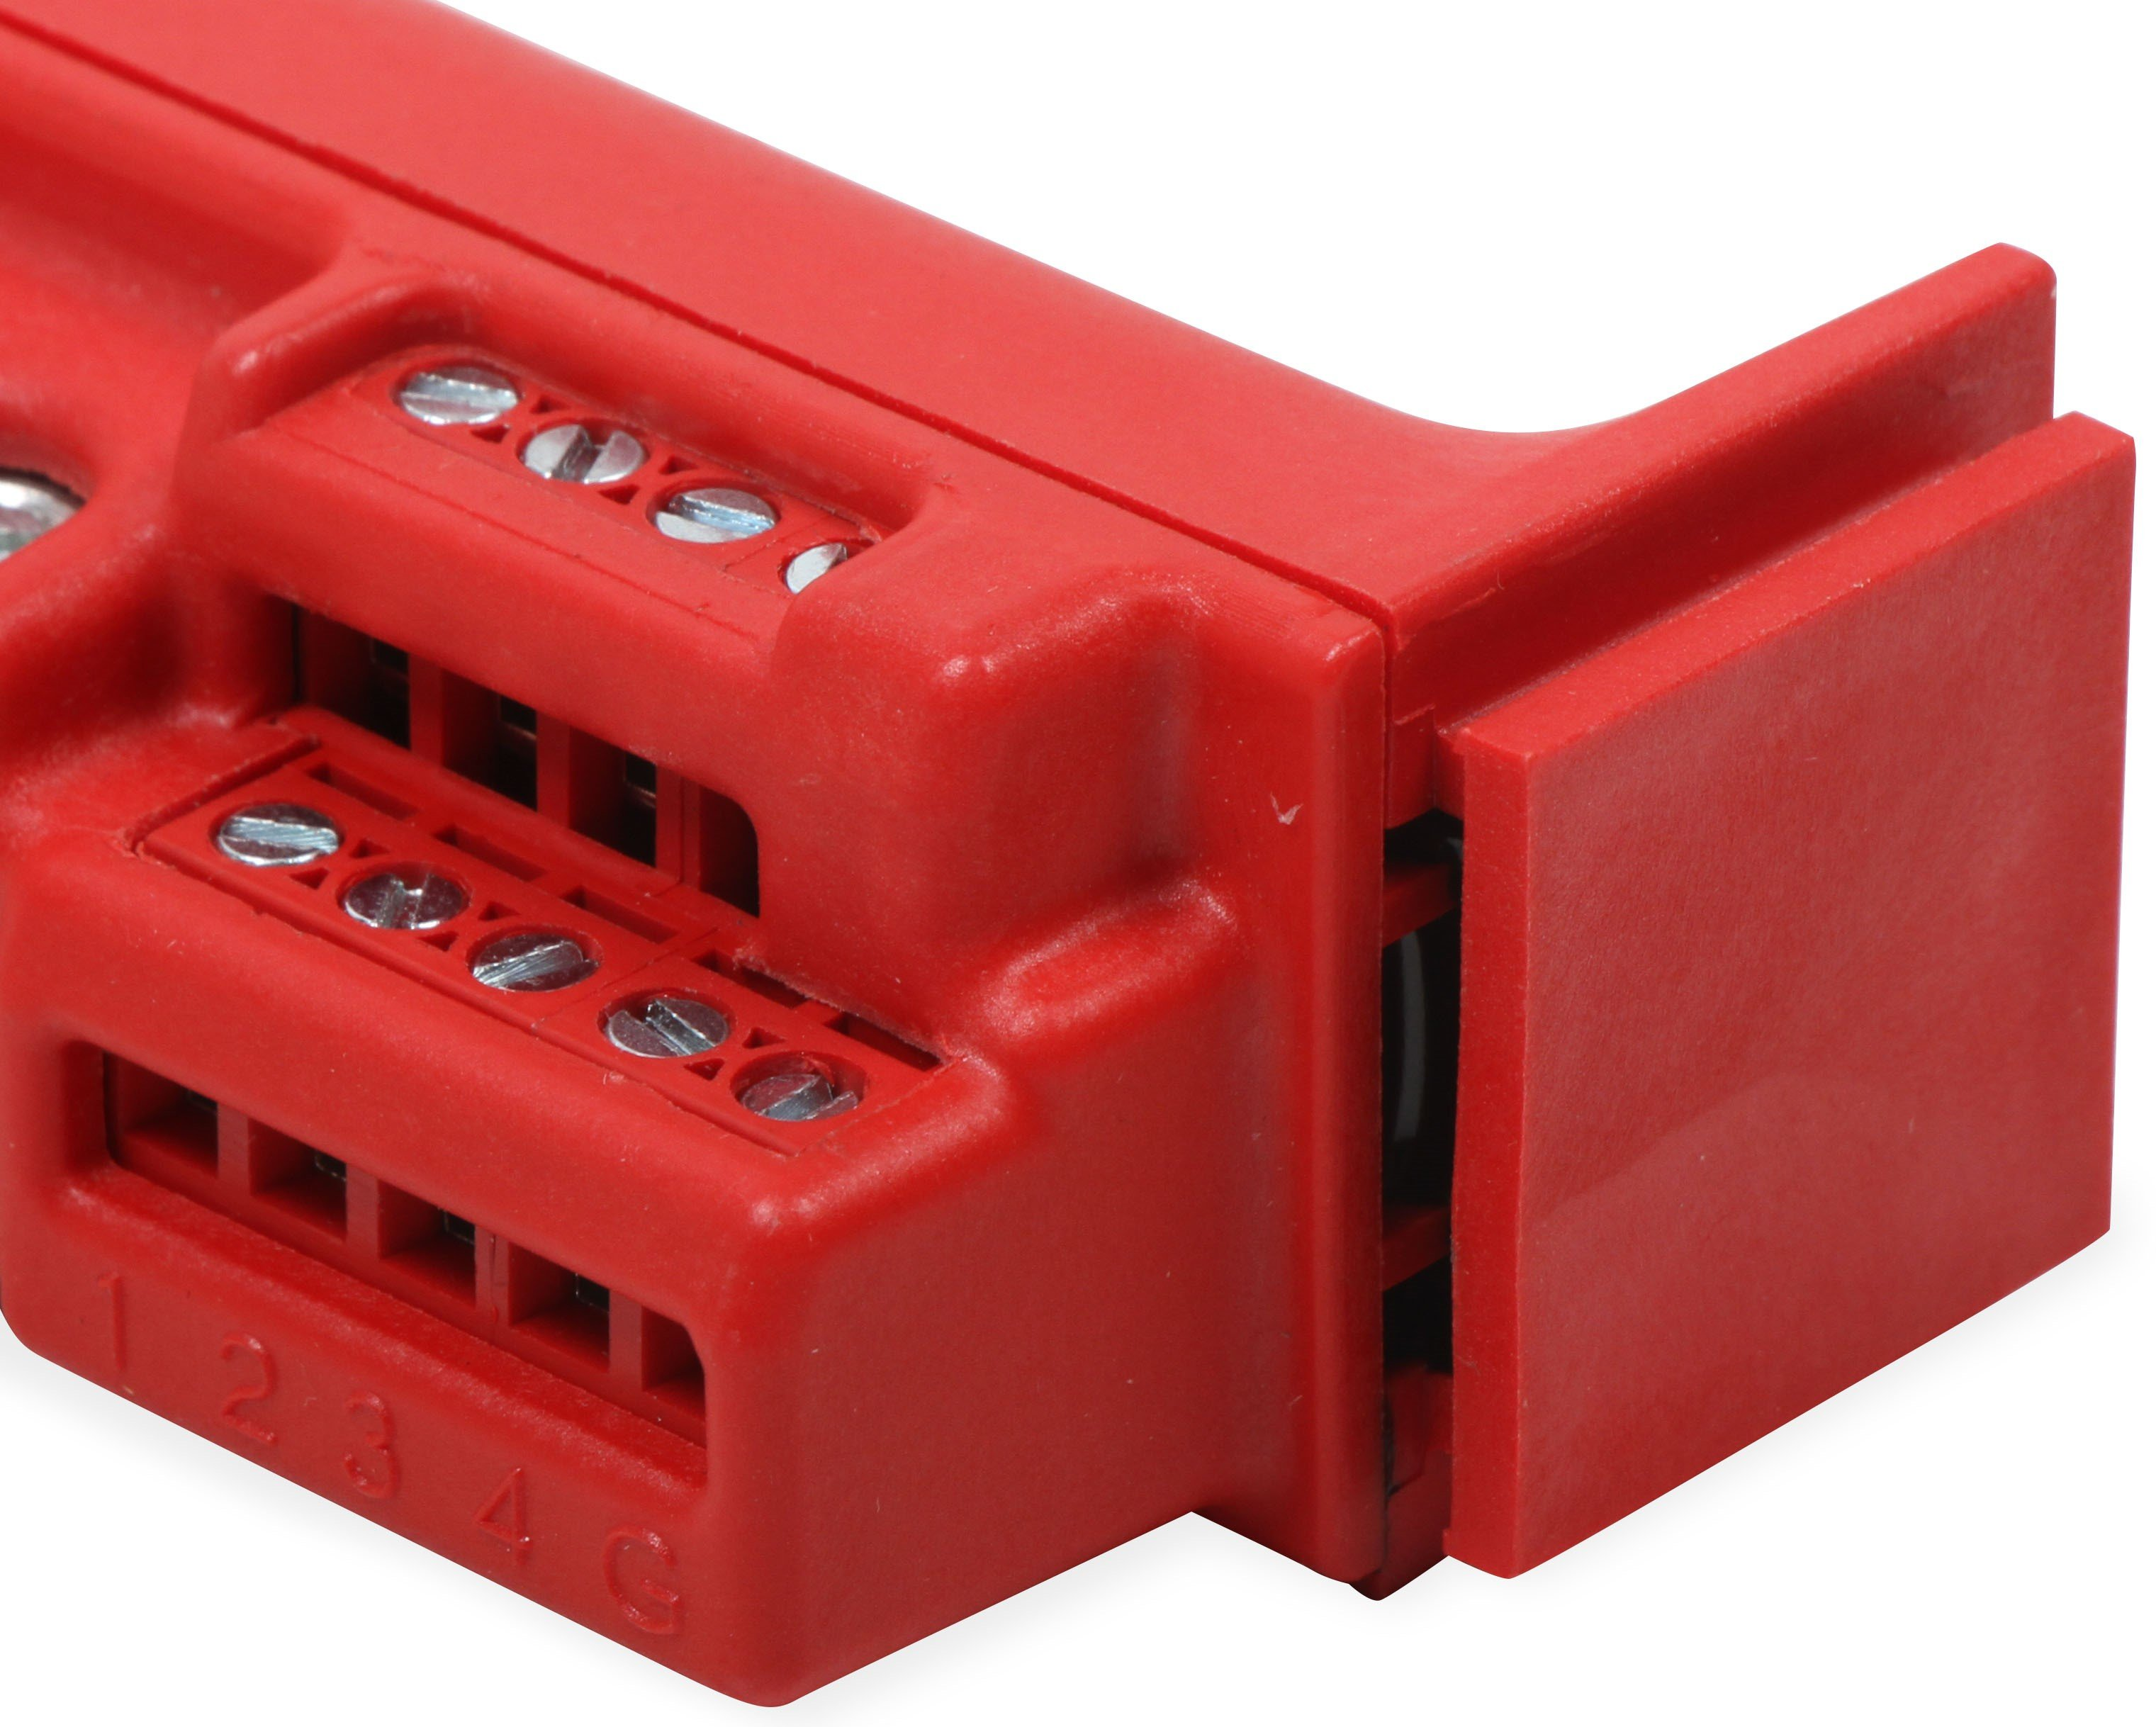 Msd Solid State Relay Blocks Make Wiring Simple Holley Blog Electronic Brick See Detailed Product Information For Msds Black Stand Alone